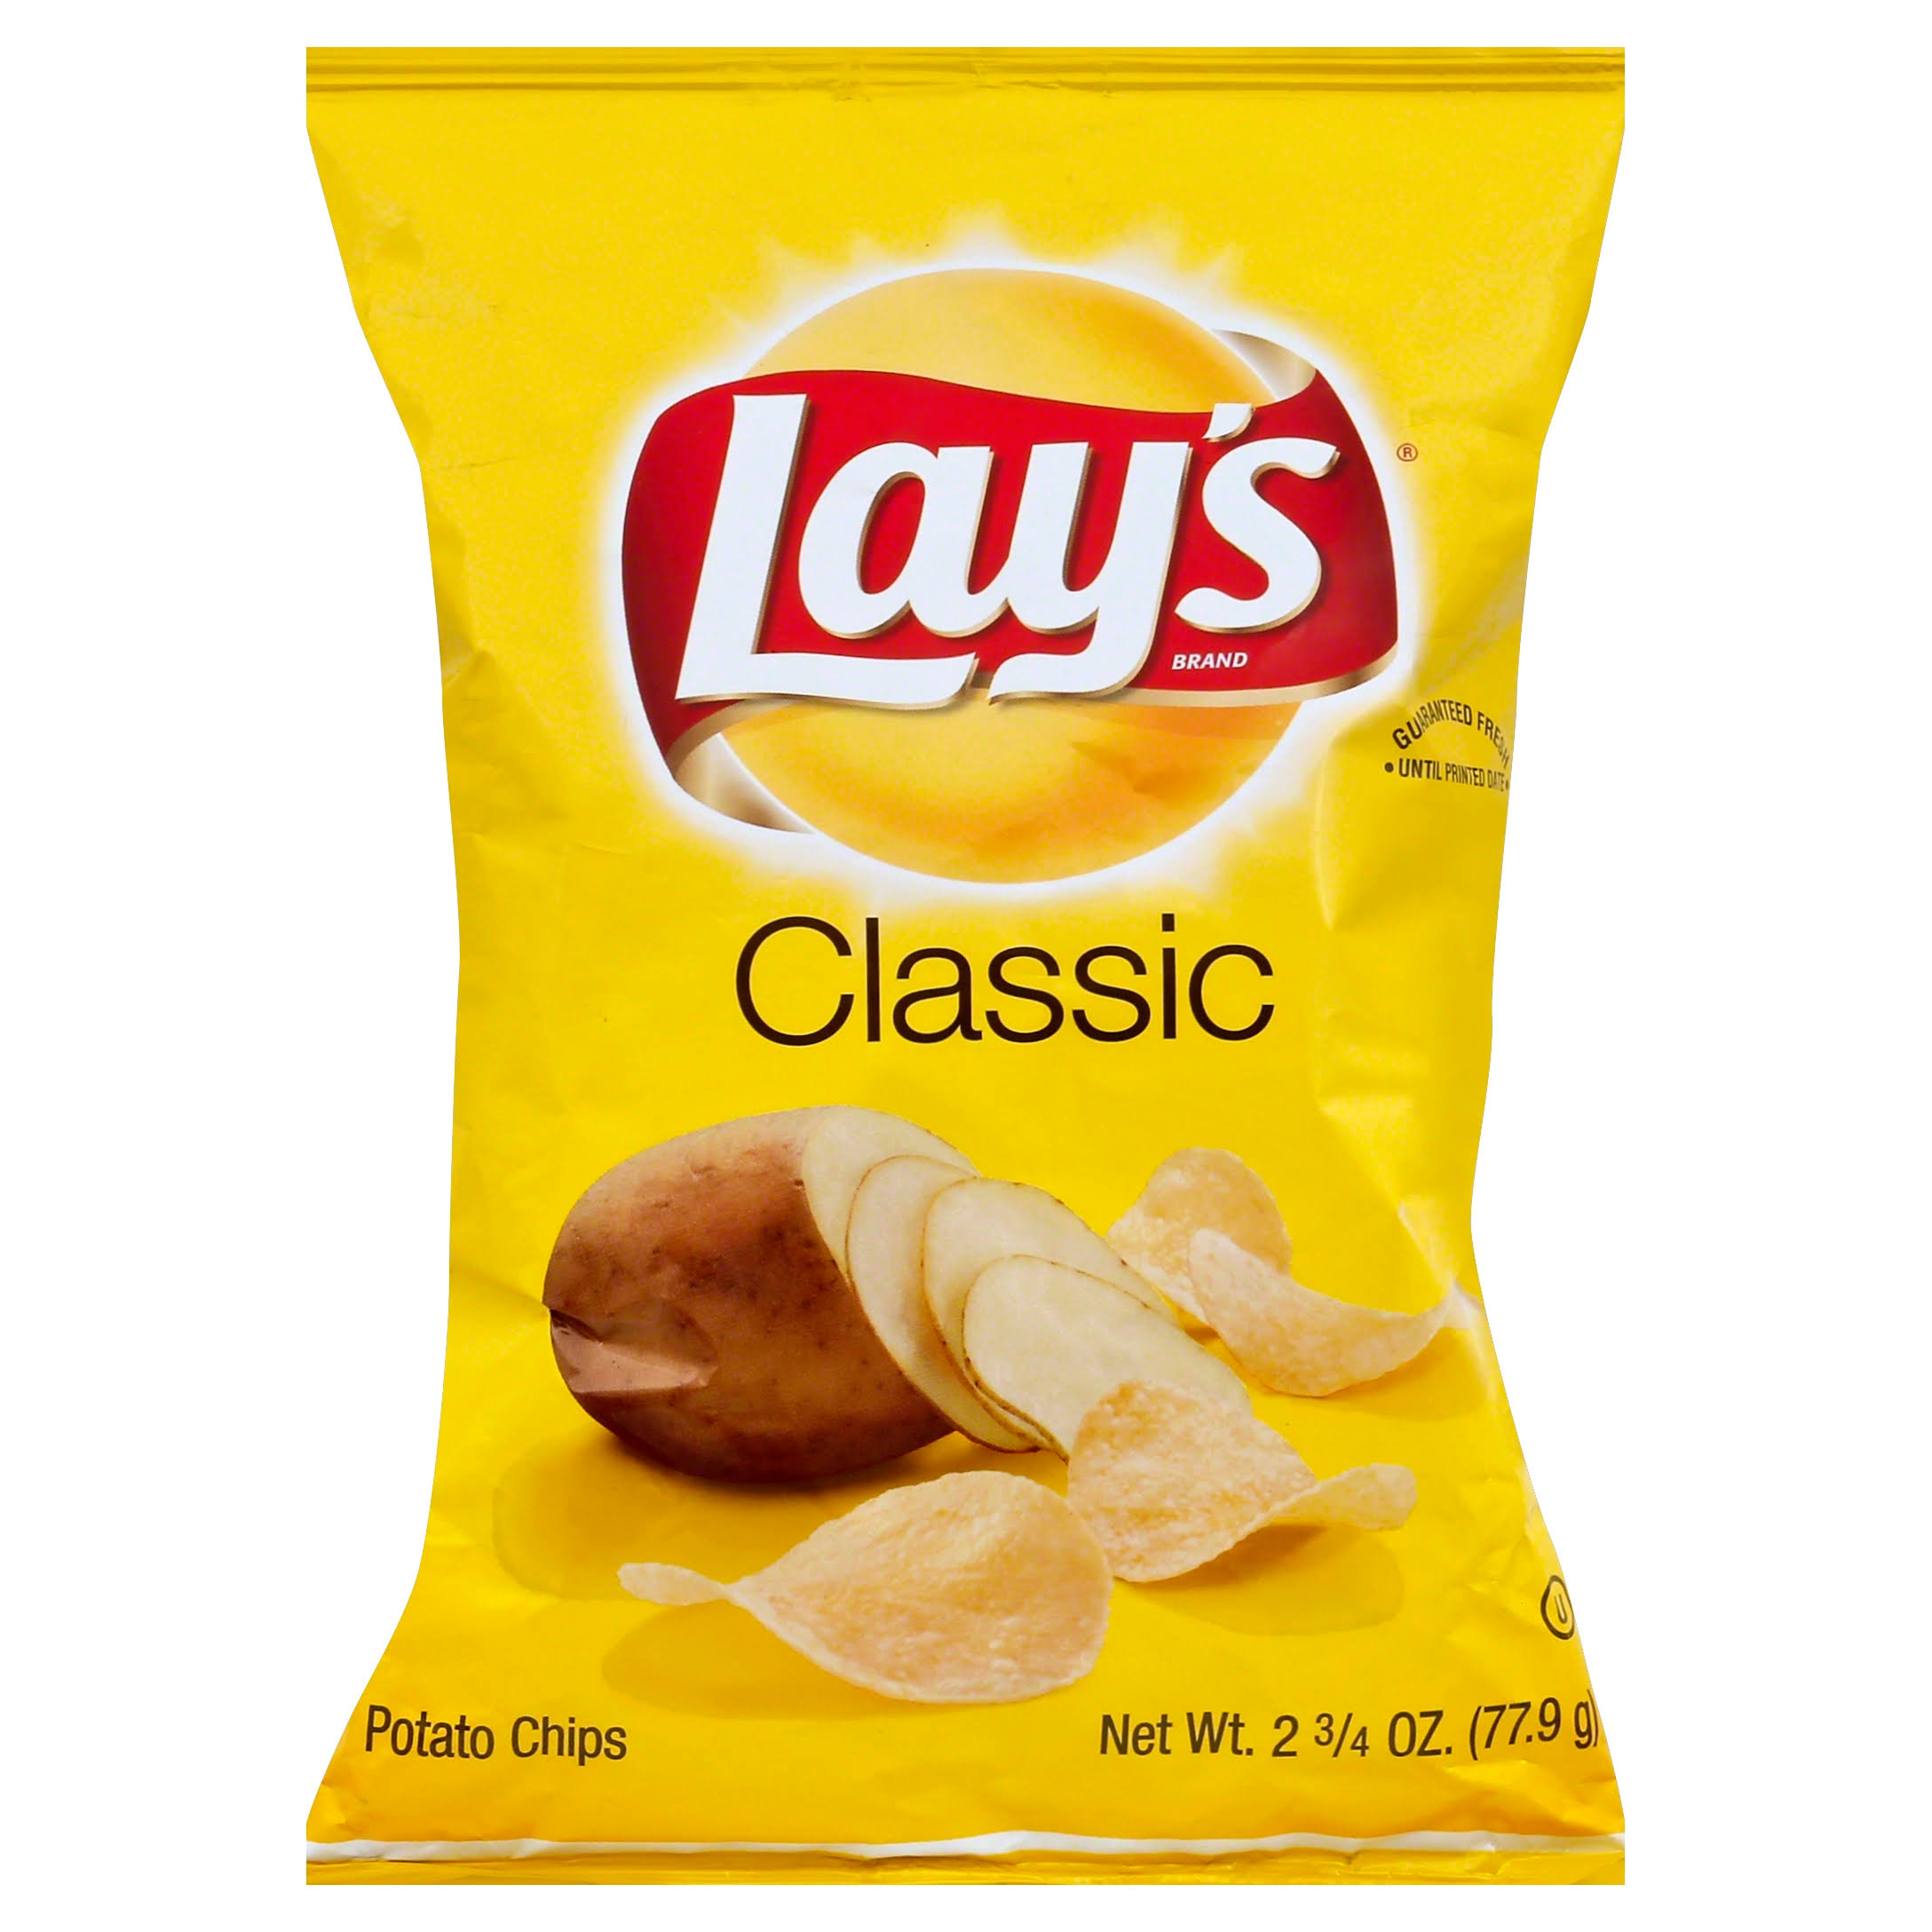 Lays Potato Chips, Classic - 2.75 oz